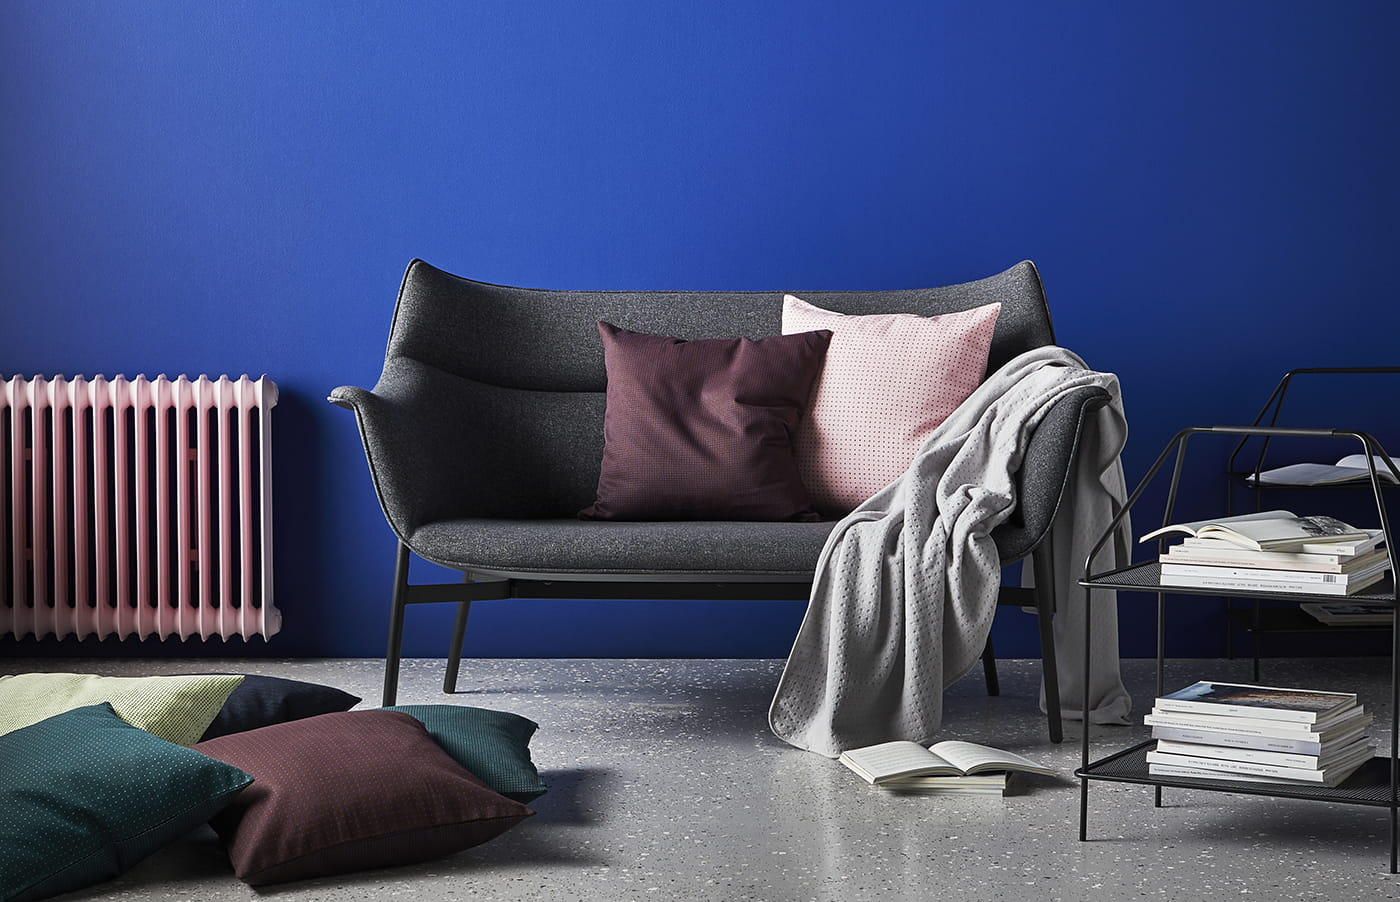 How IKEA evolved its consumer experience by integrating online and offline